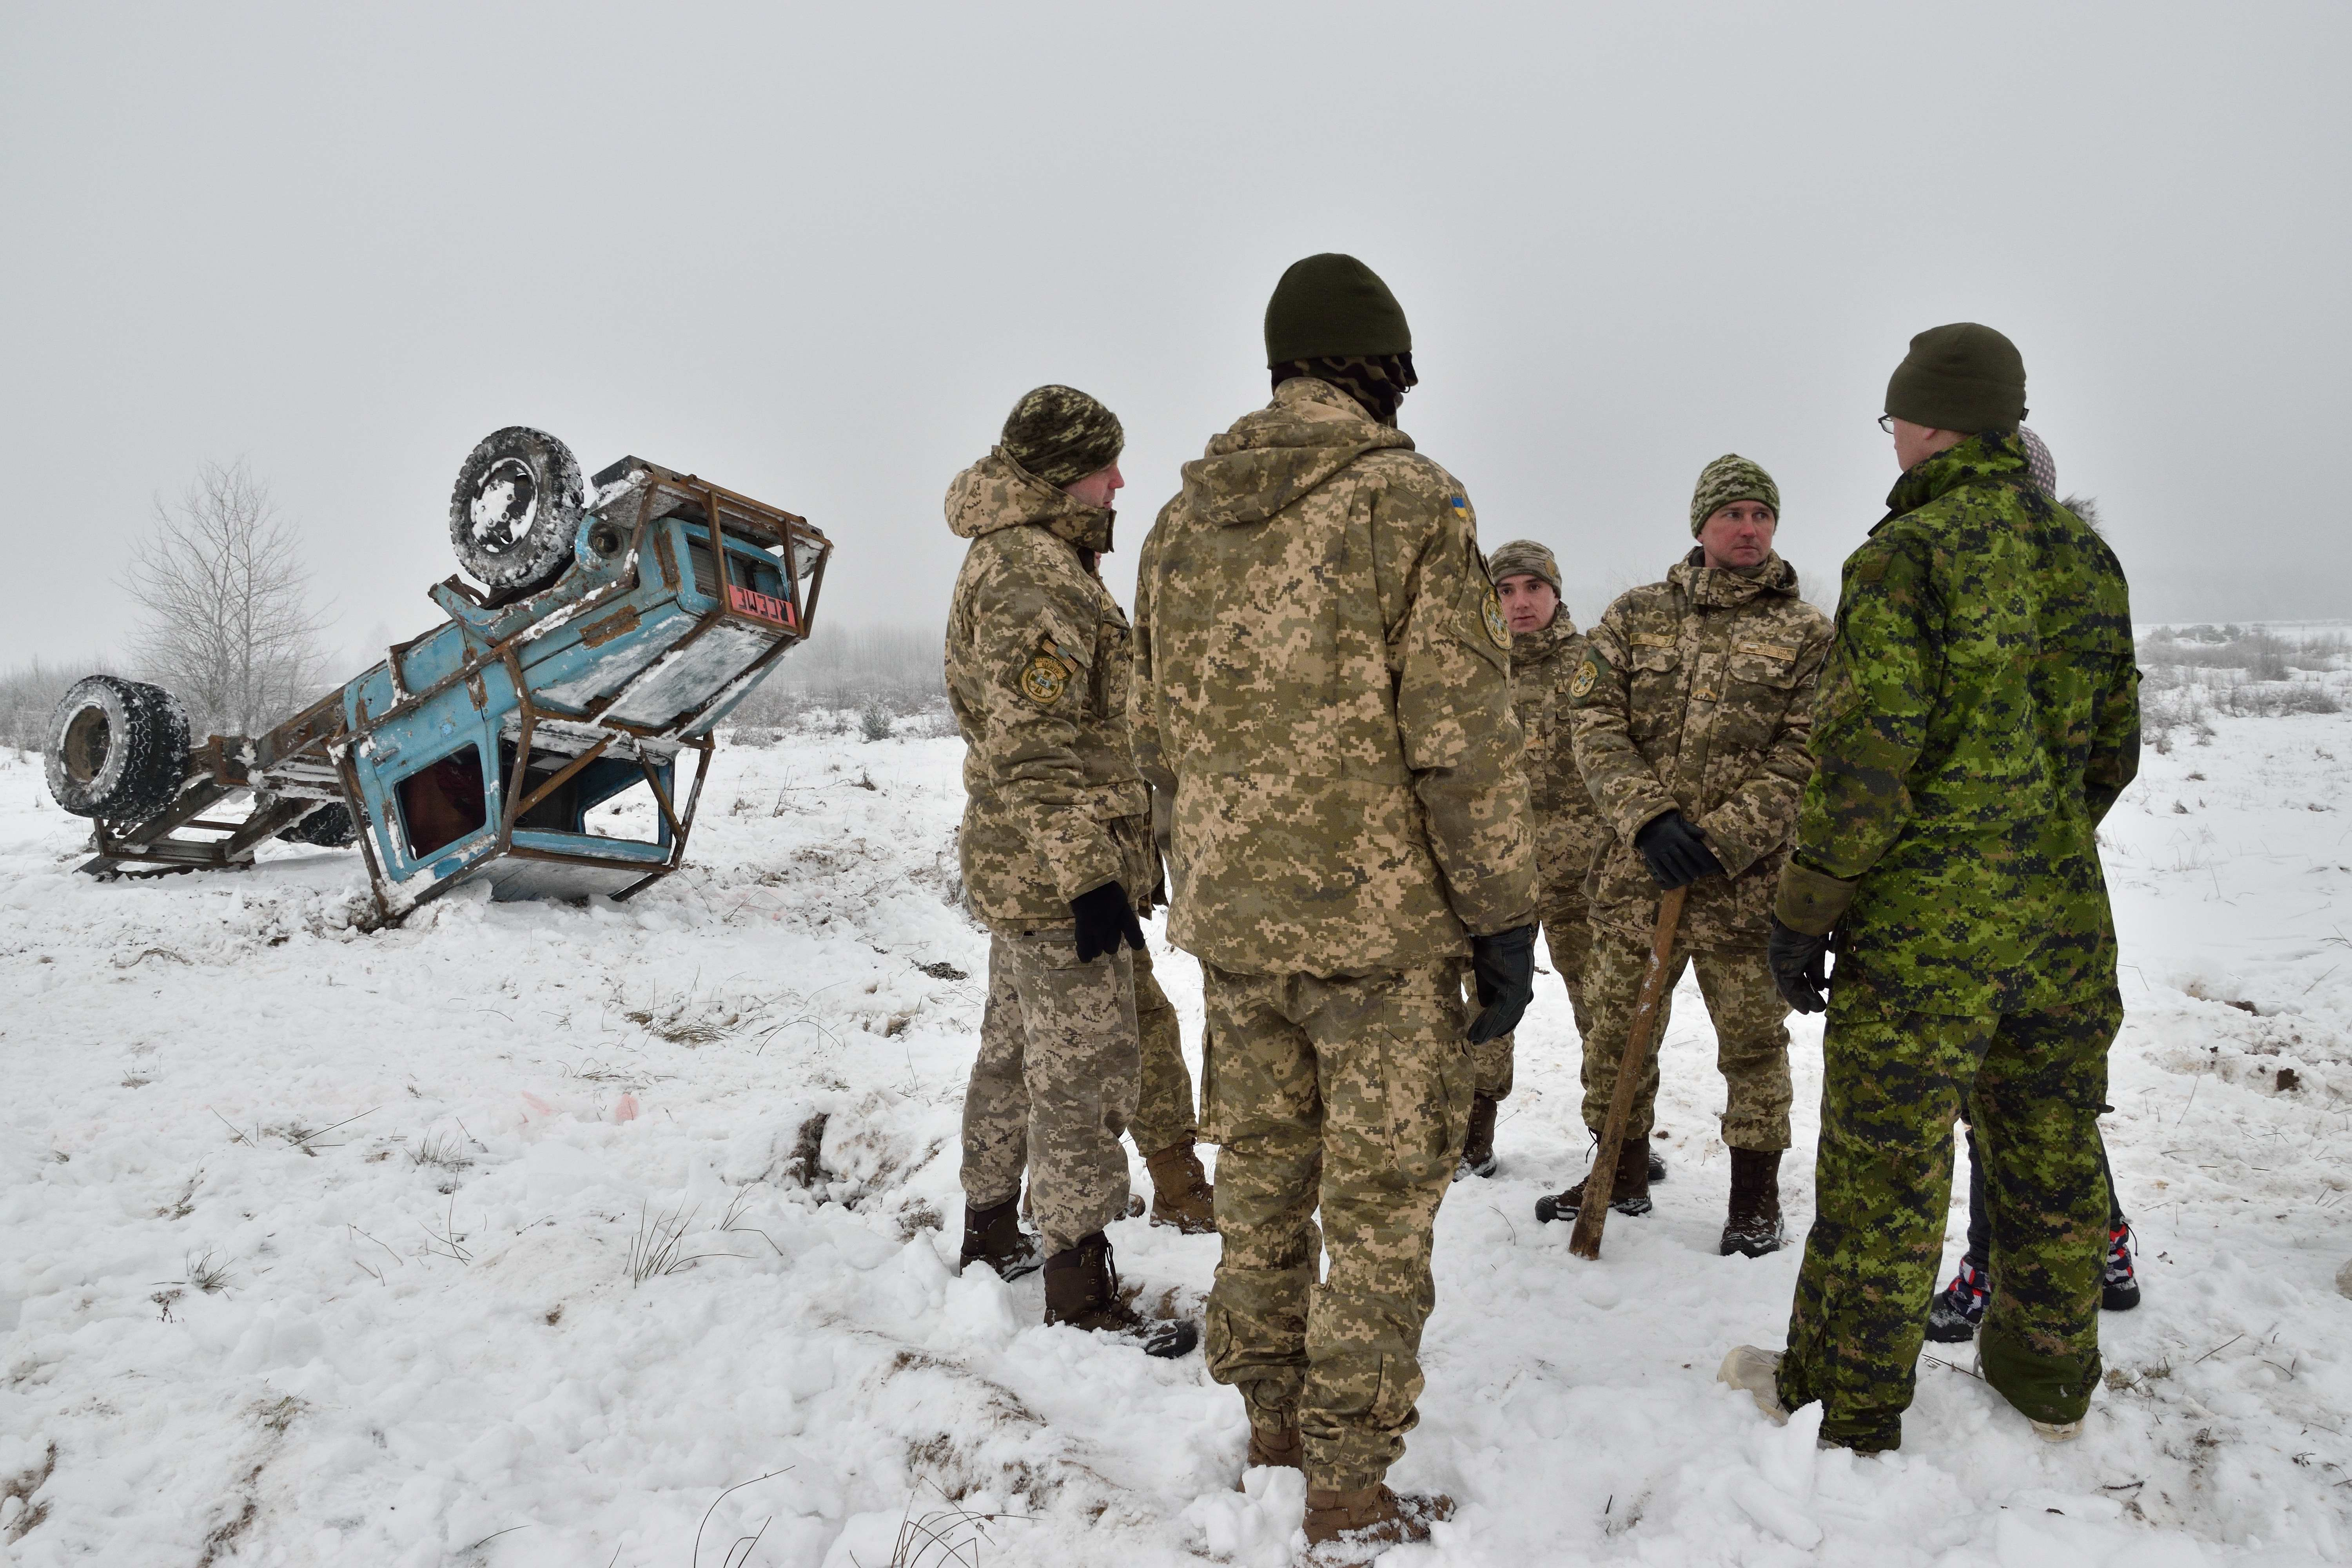 A Joint Task Force – Ukraine logistics modernization instructor plans a vehicle recovery with Ukrainian trainees during Operation UNIFIER at the International Peacekeeping and Security Centre in Starychi, Ukraine on January 25, 2017. (Photo: Joint Task Force – Ukraine)